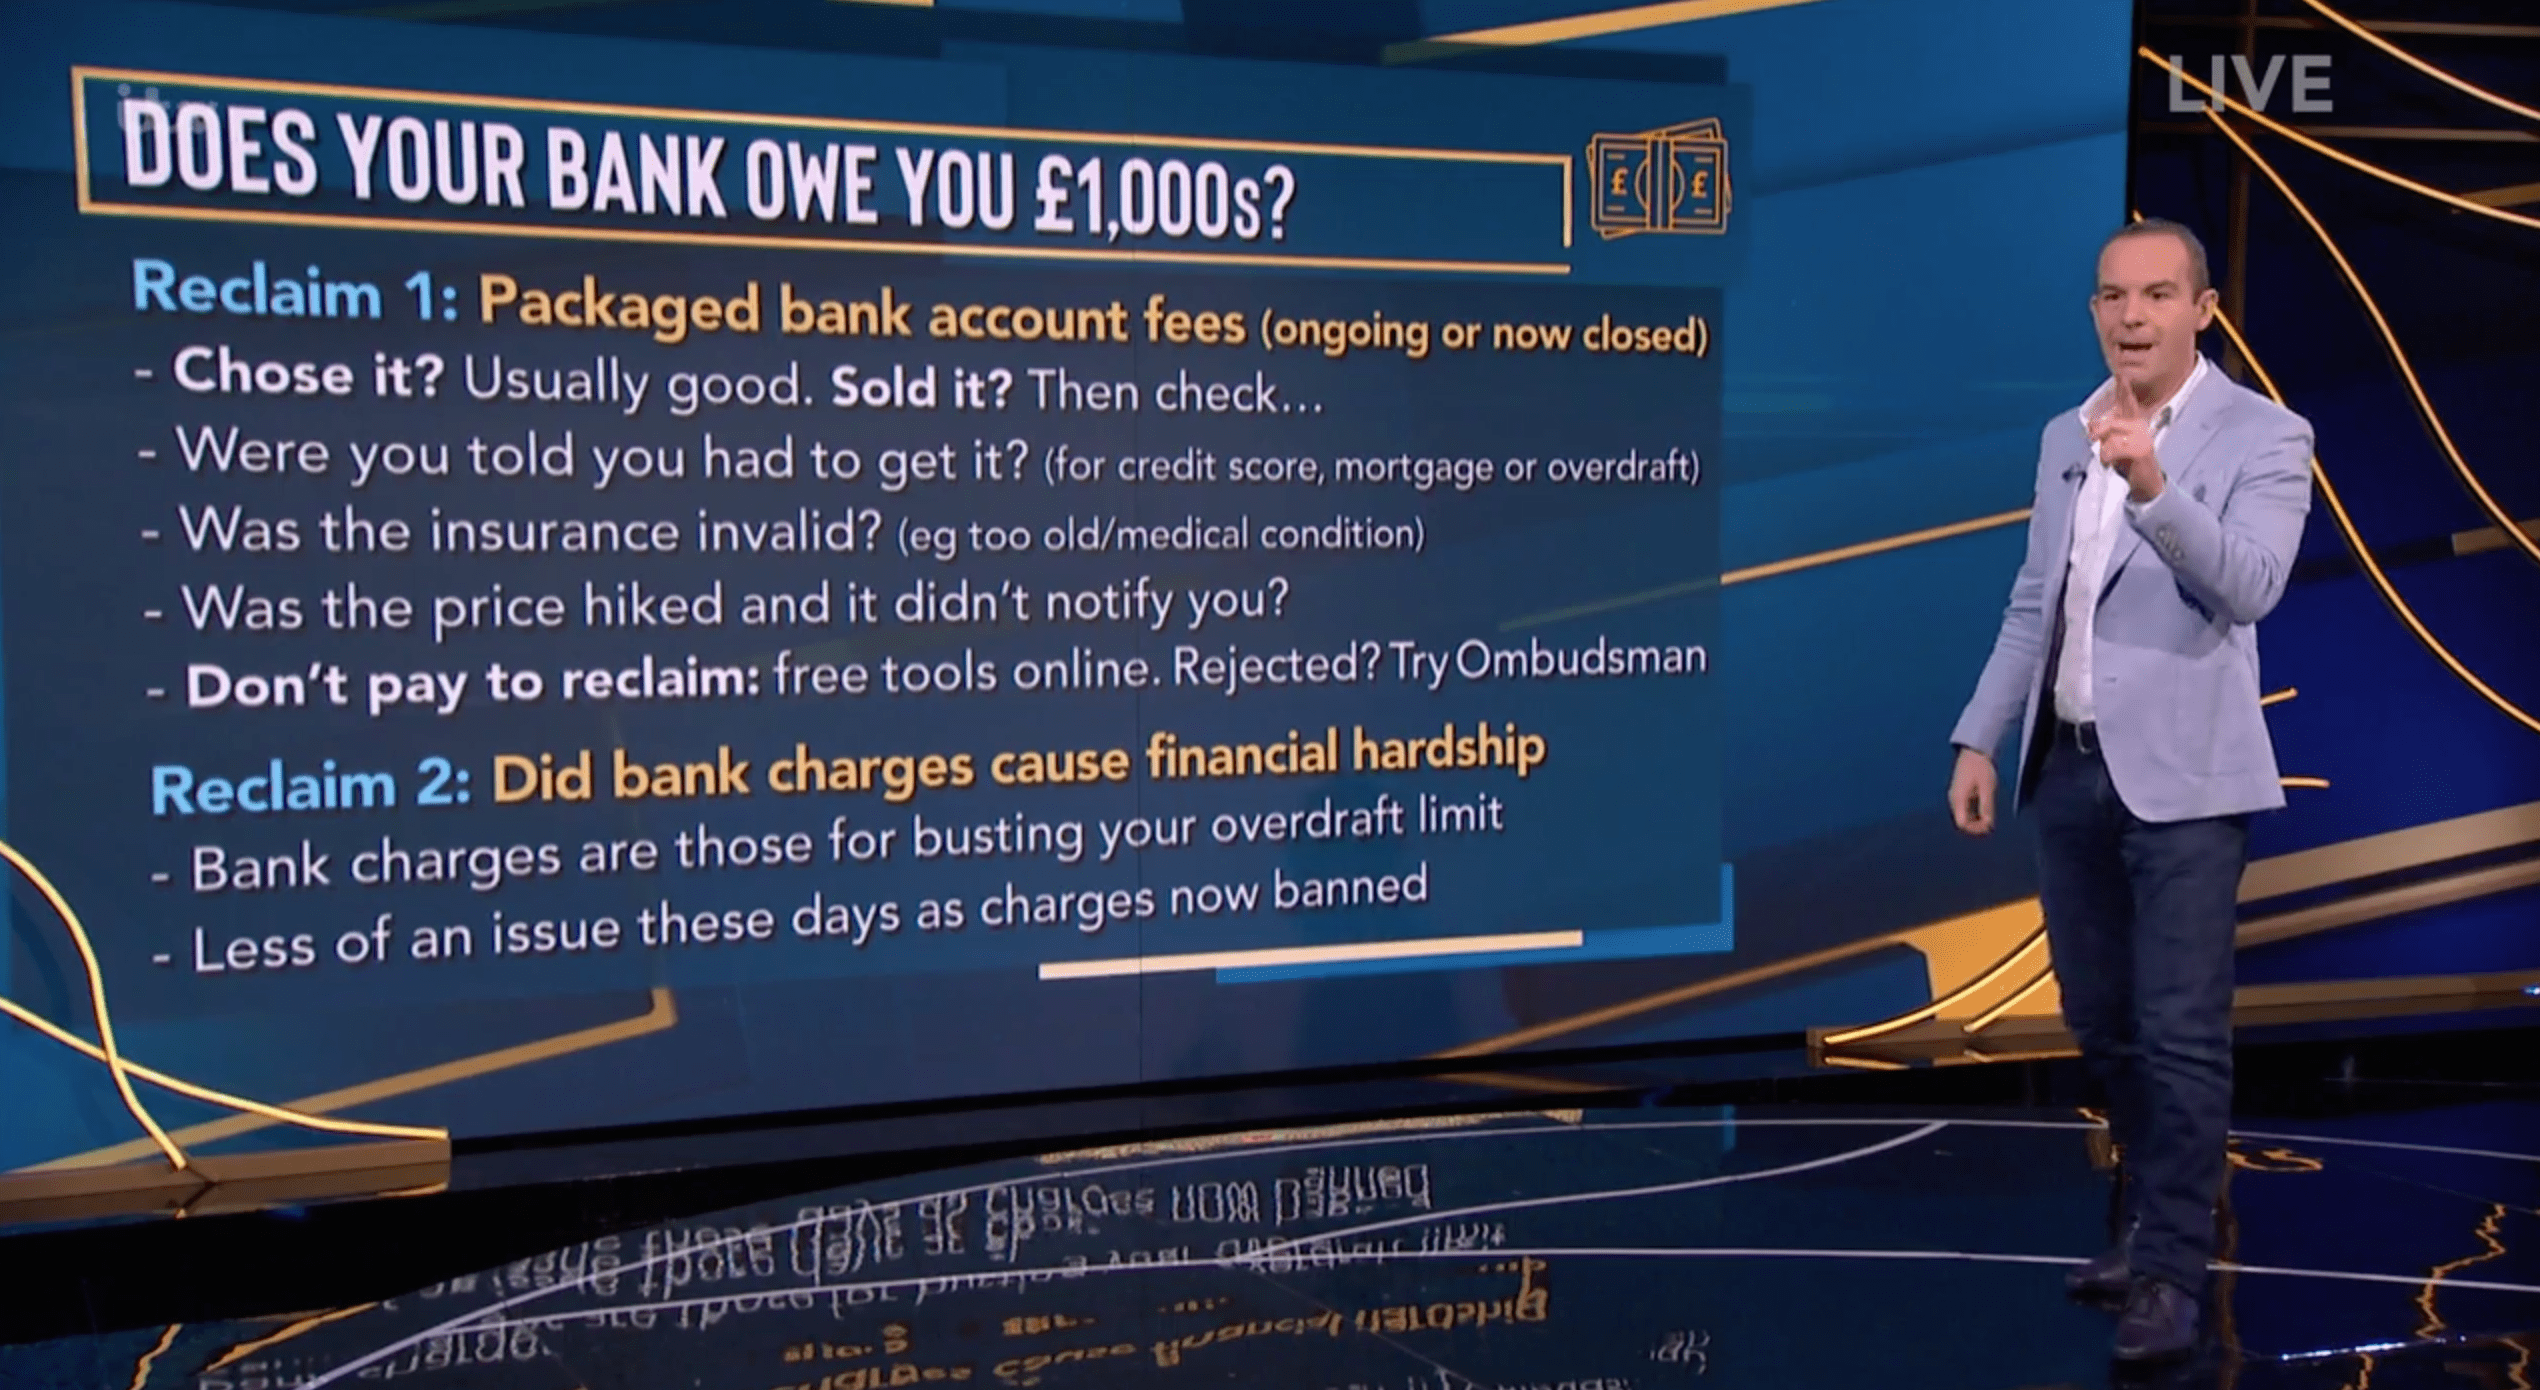 Martin Lewis has explained how to reclaim thousands of pounds from your bank